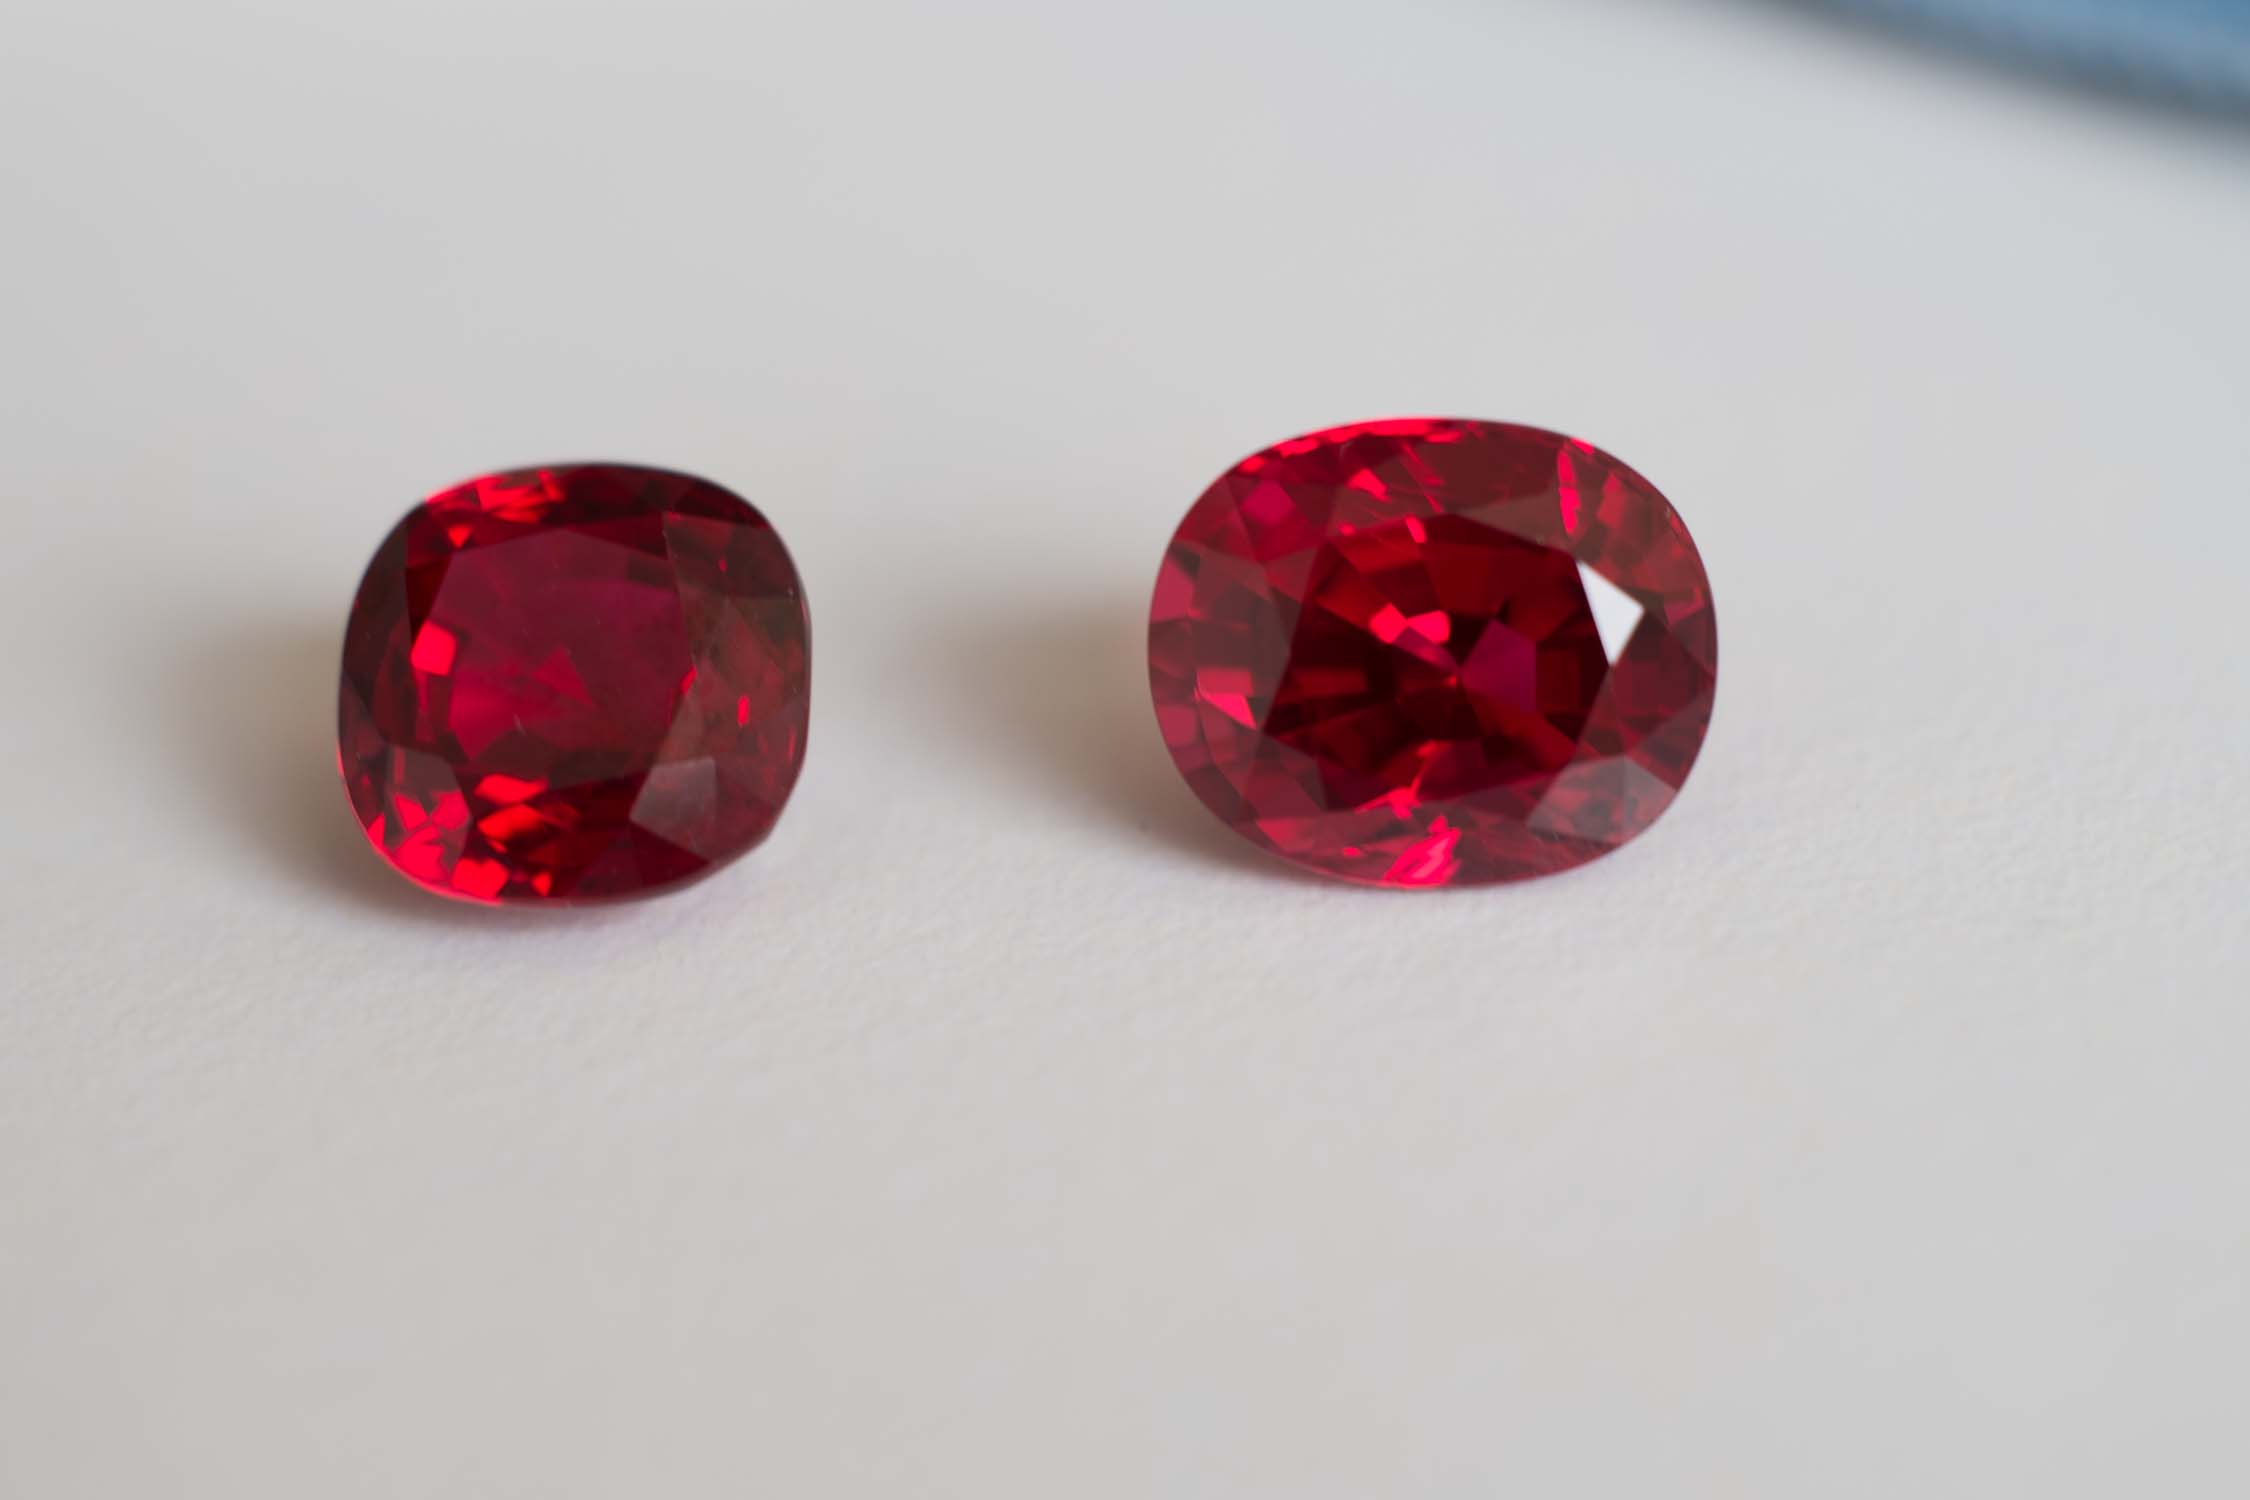 Pair of rich raspberry colored spinels.